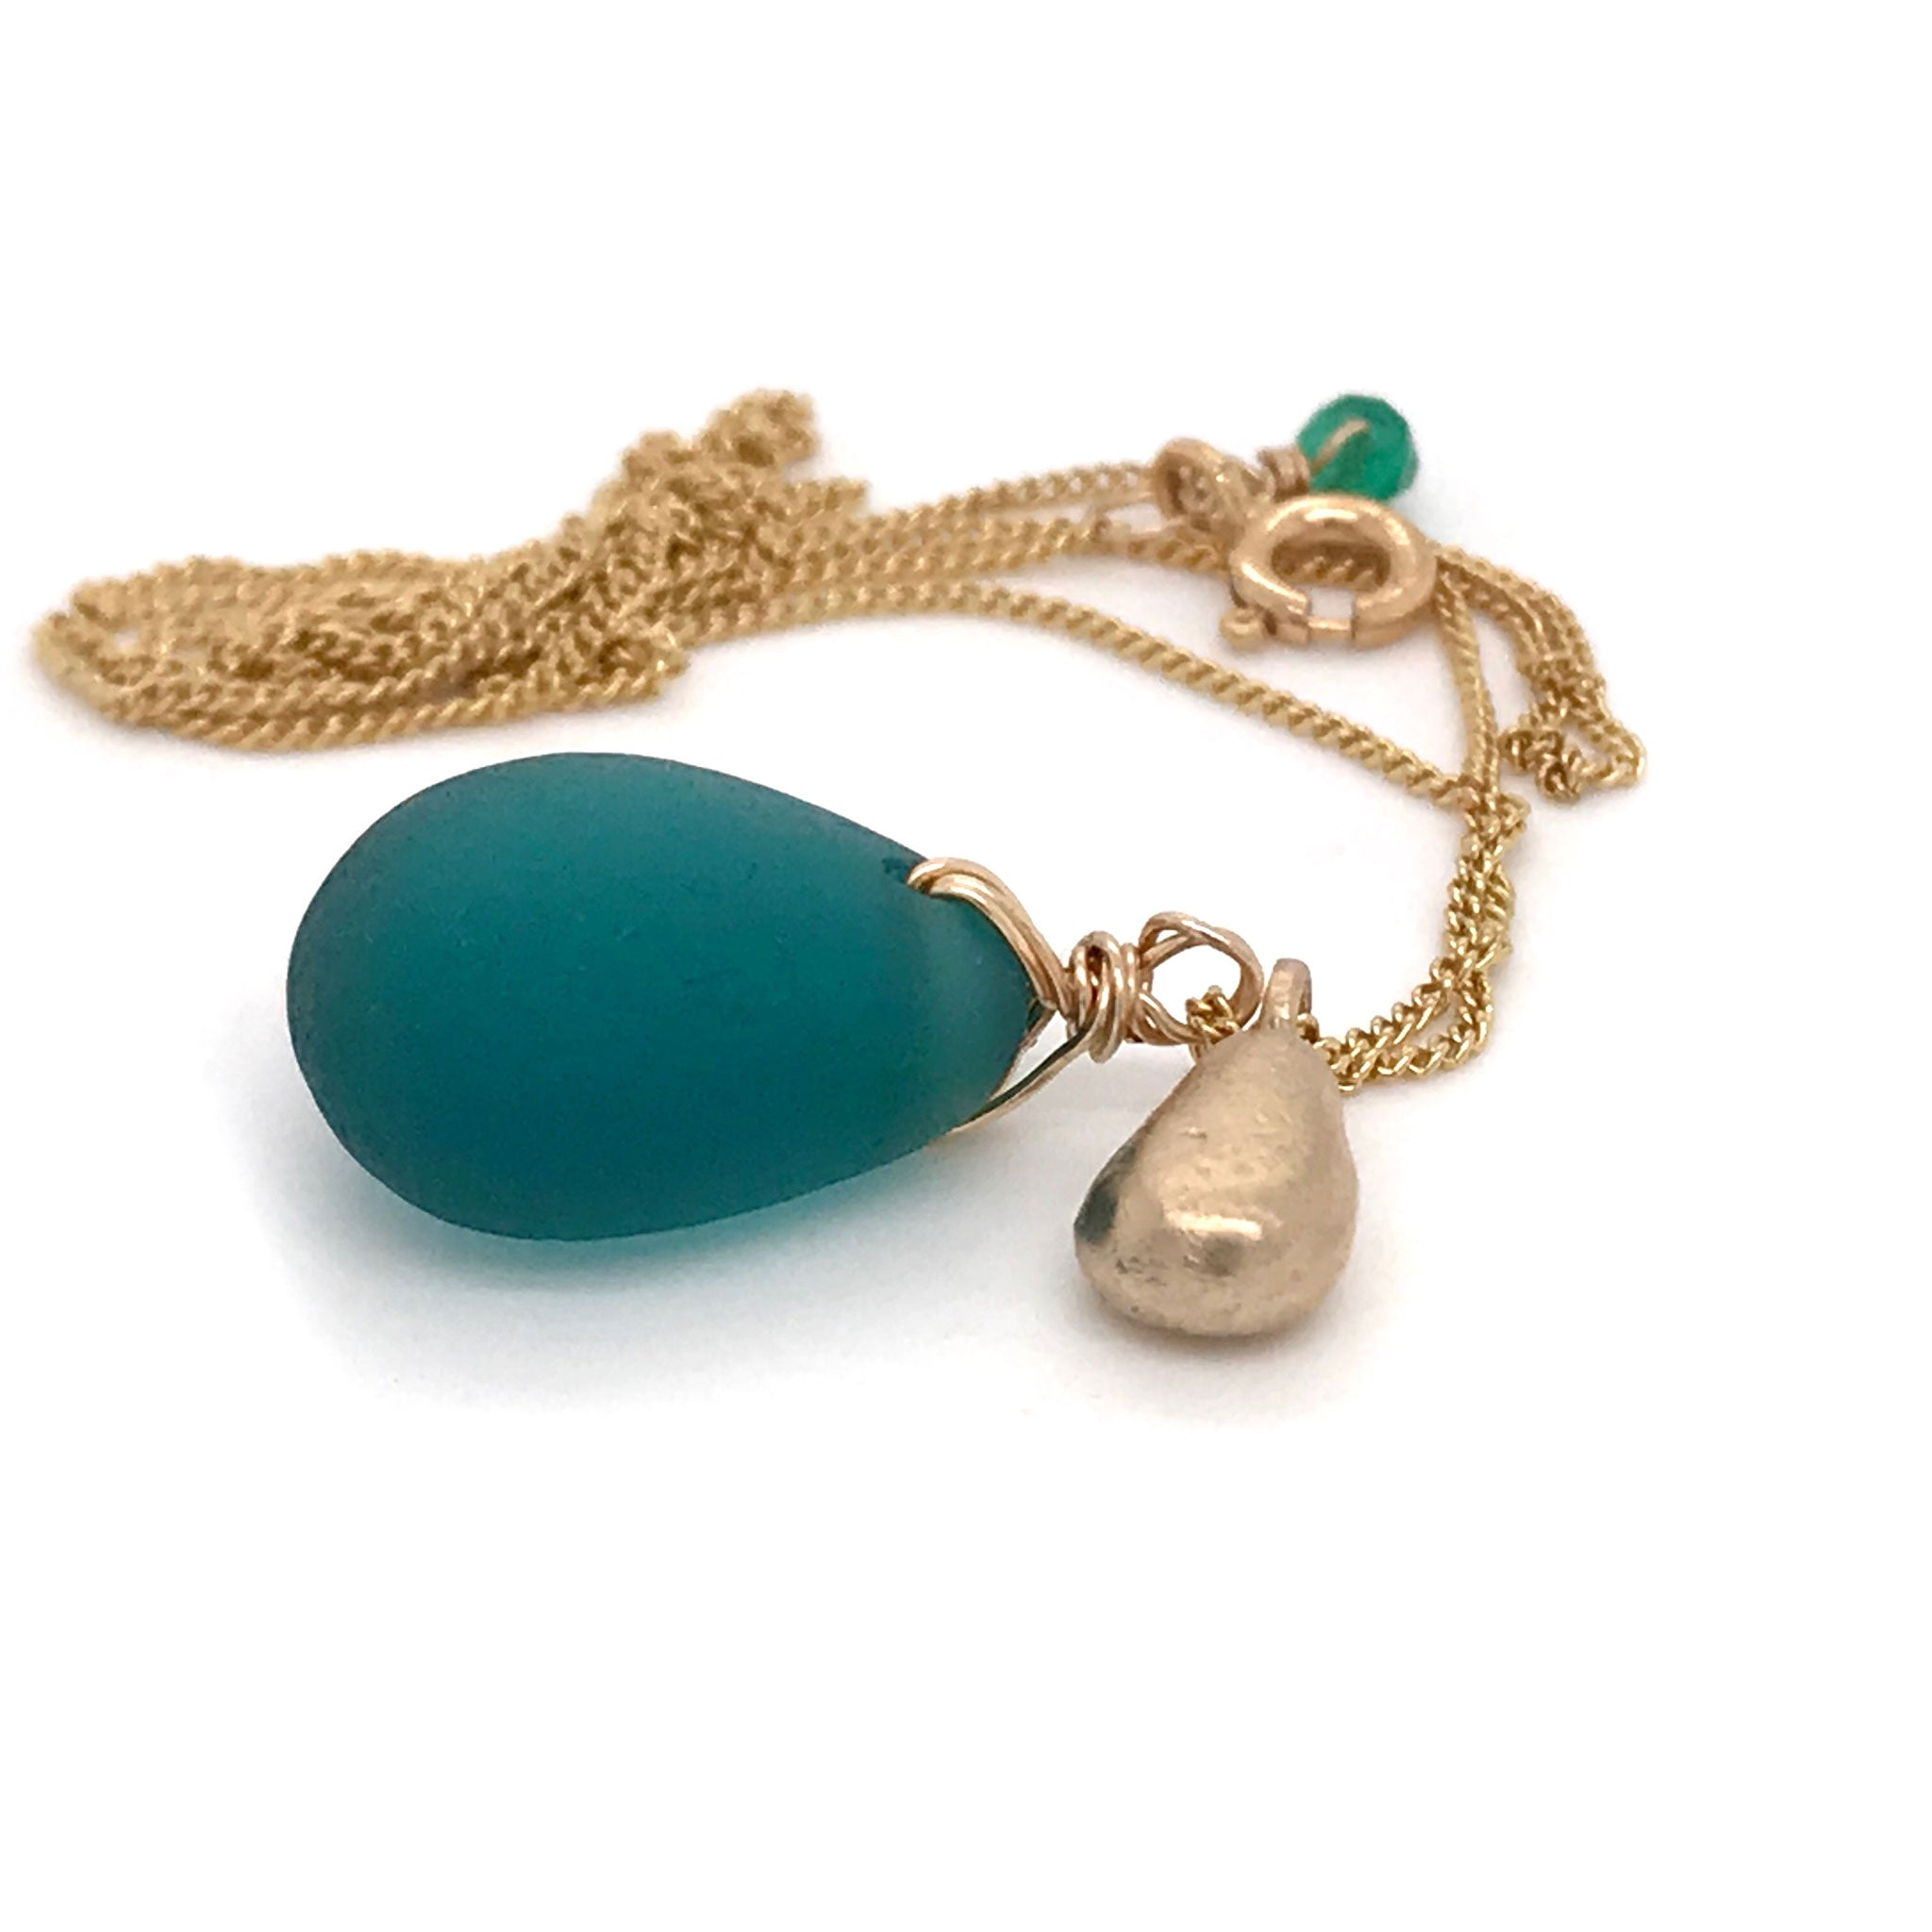 teal seaglass necklace on gold chain with solid 14k gold teardrop charm Kriket Broadhurst jewelry